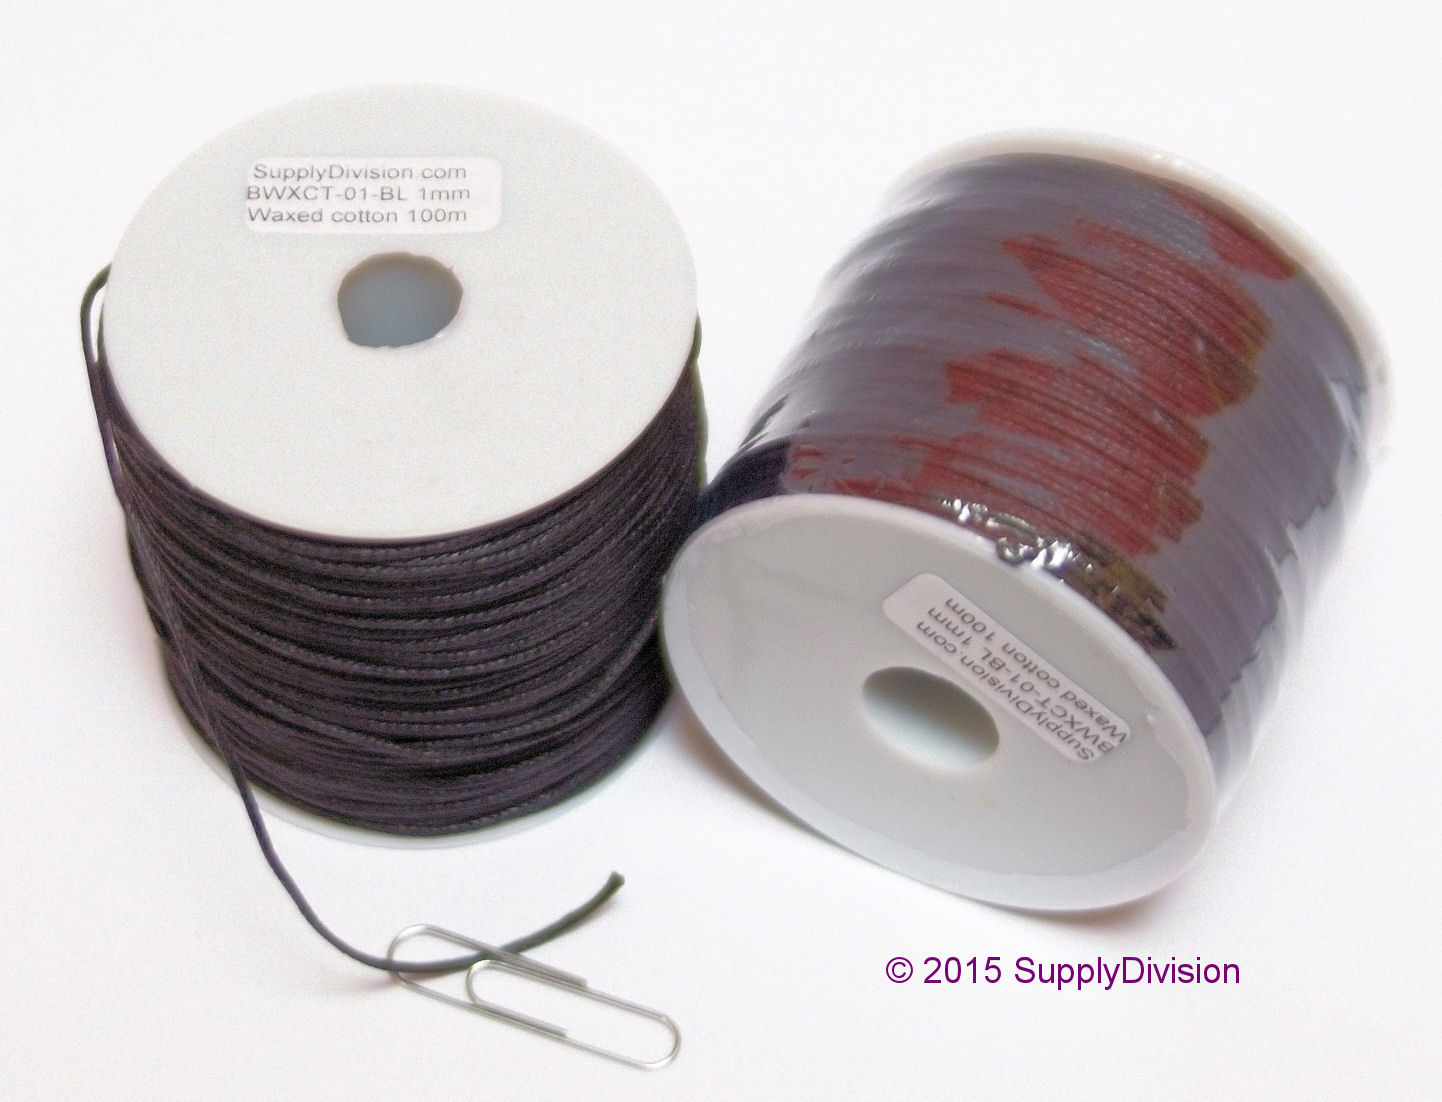 1mm Waxed cotton SDWXCT-01-100m